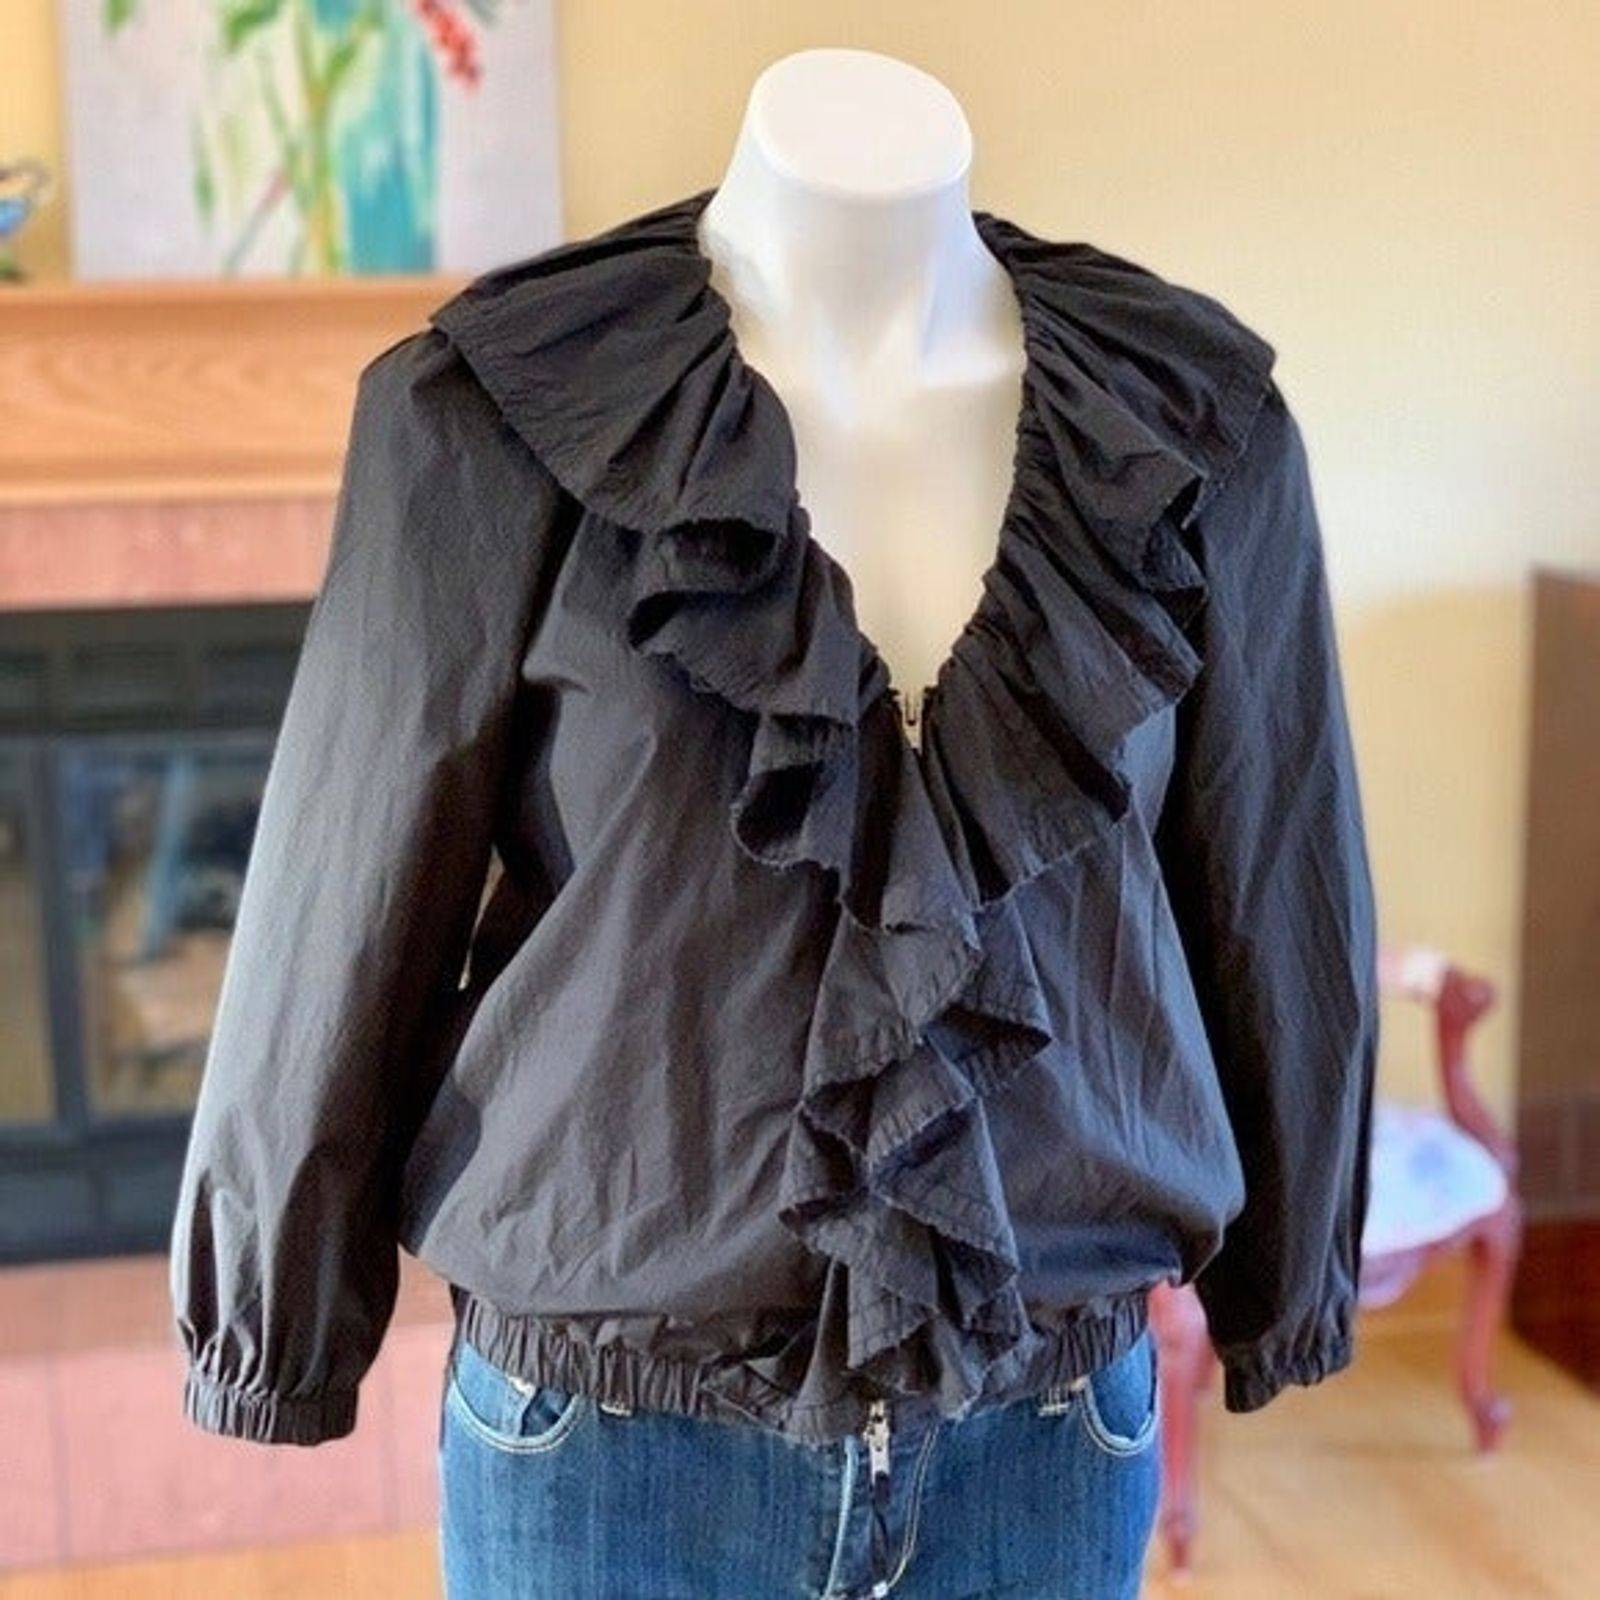 Juicy Couture Ruffle Bomber Jacket Sz M